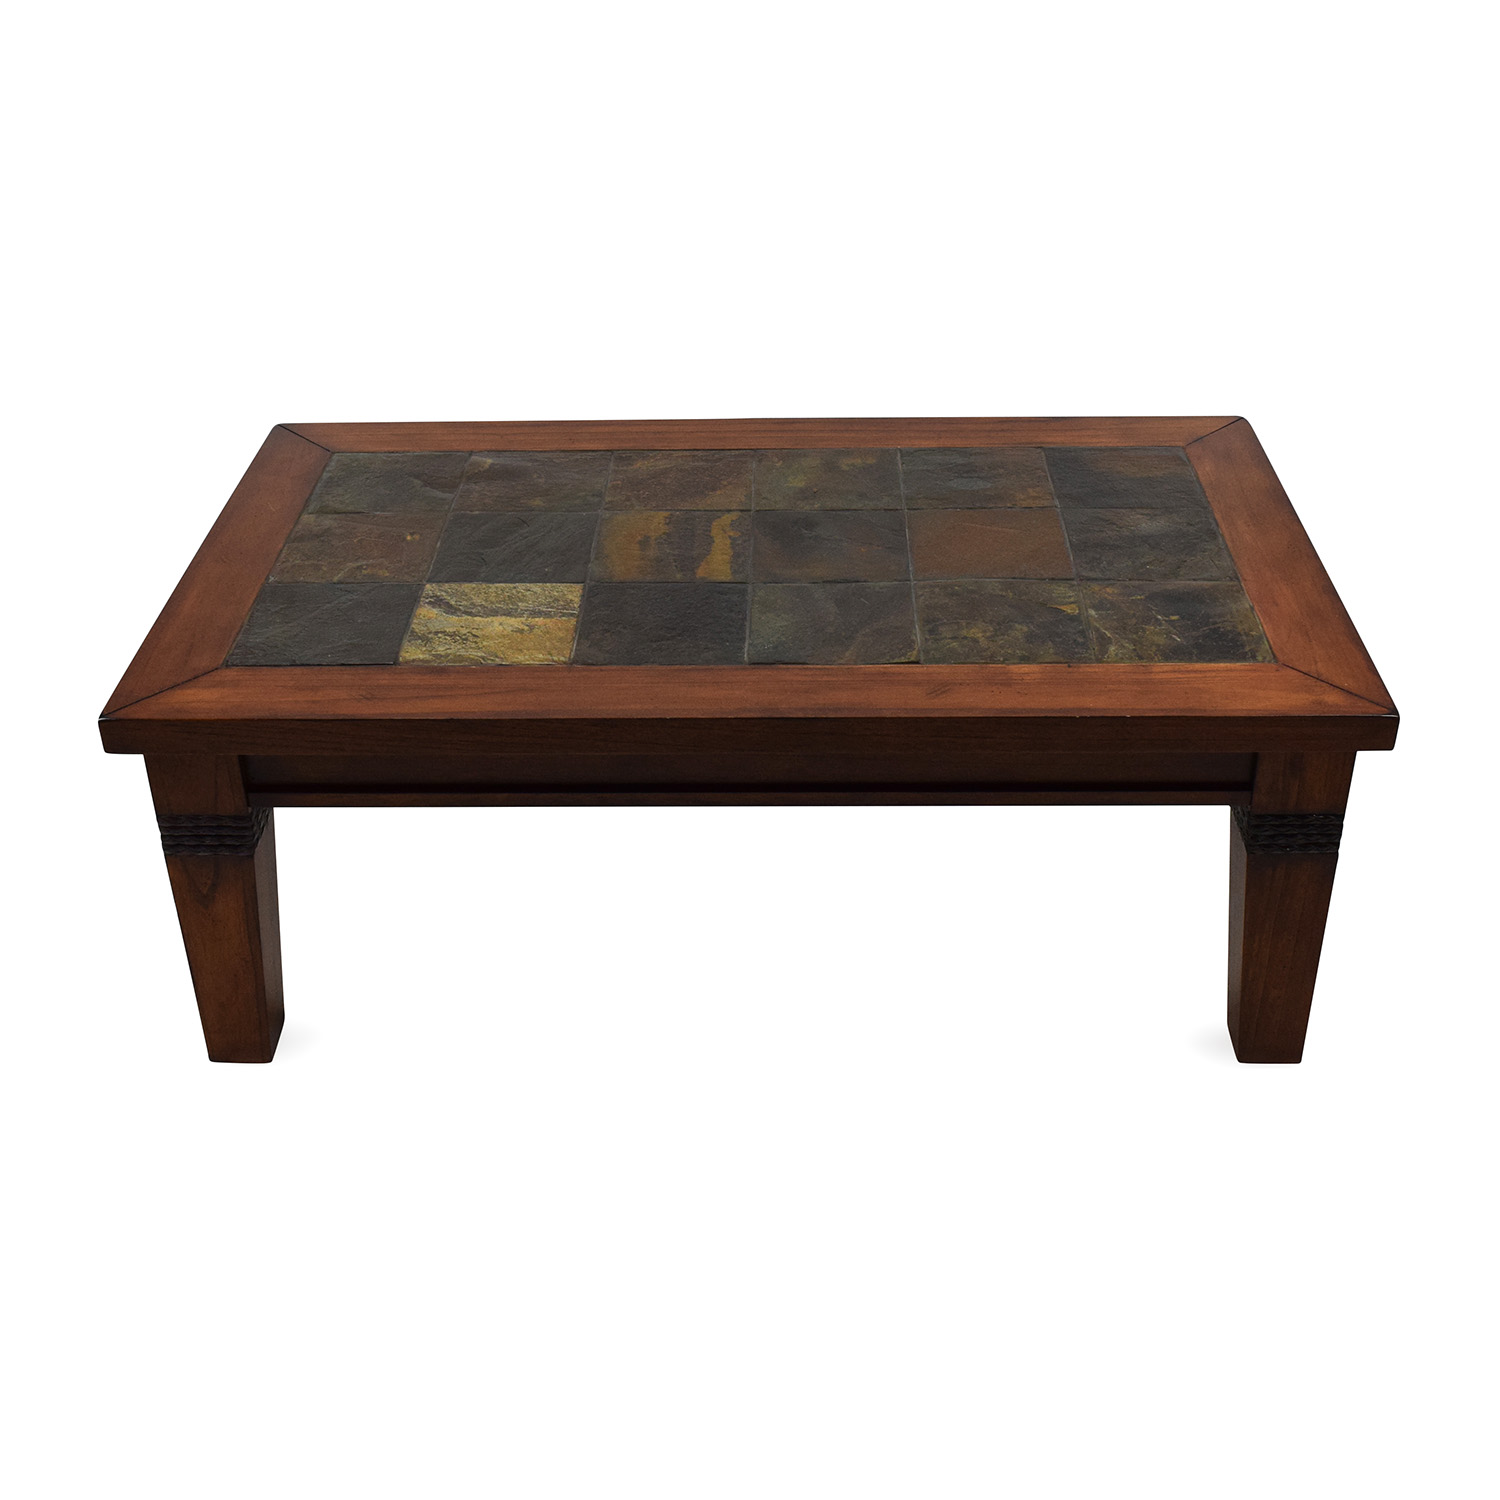 100 used furniture sale online india 77 off wooden for Coffee table sale online